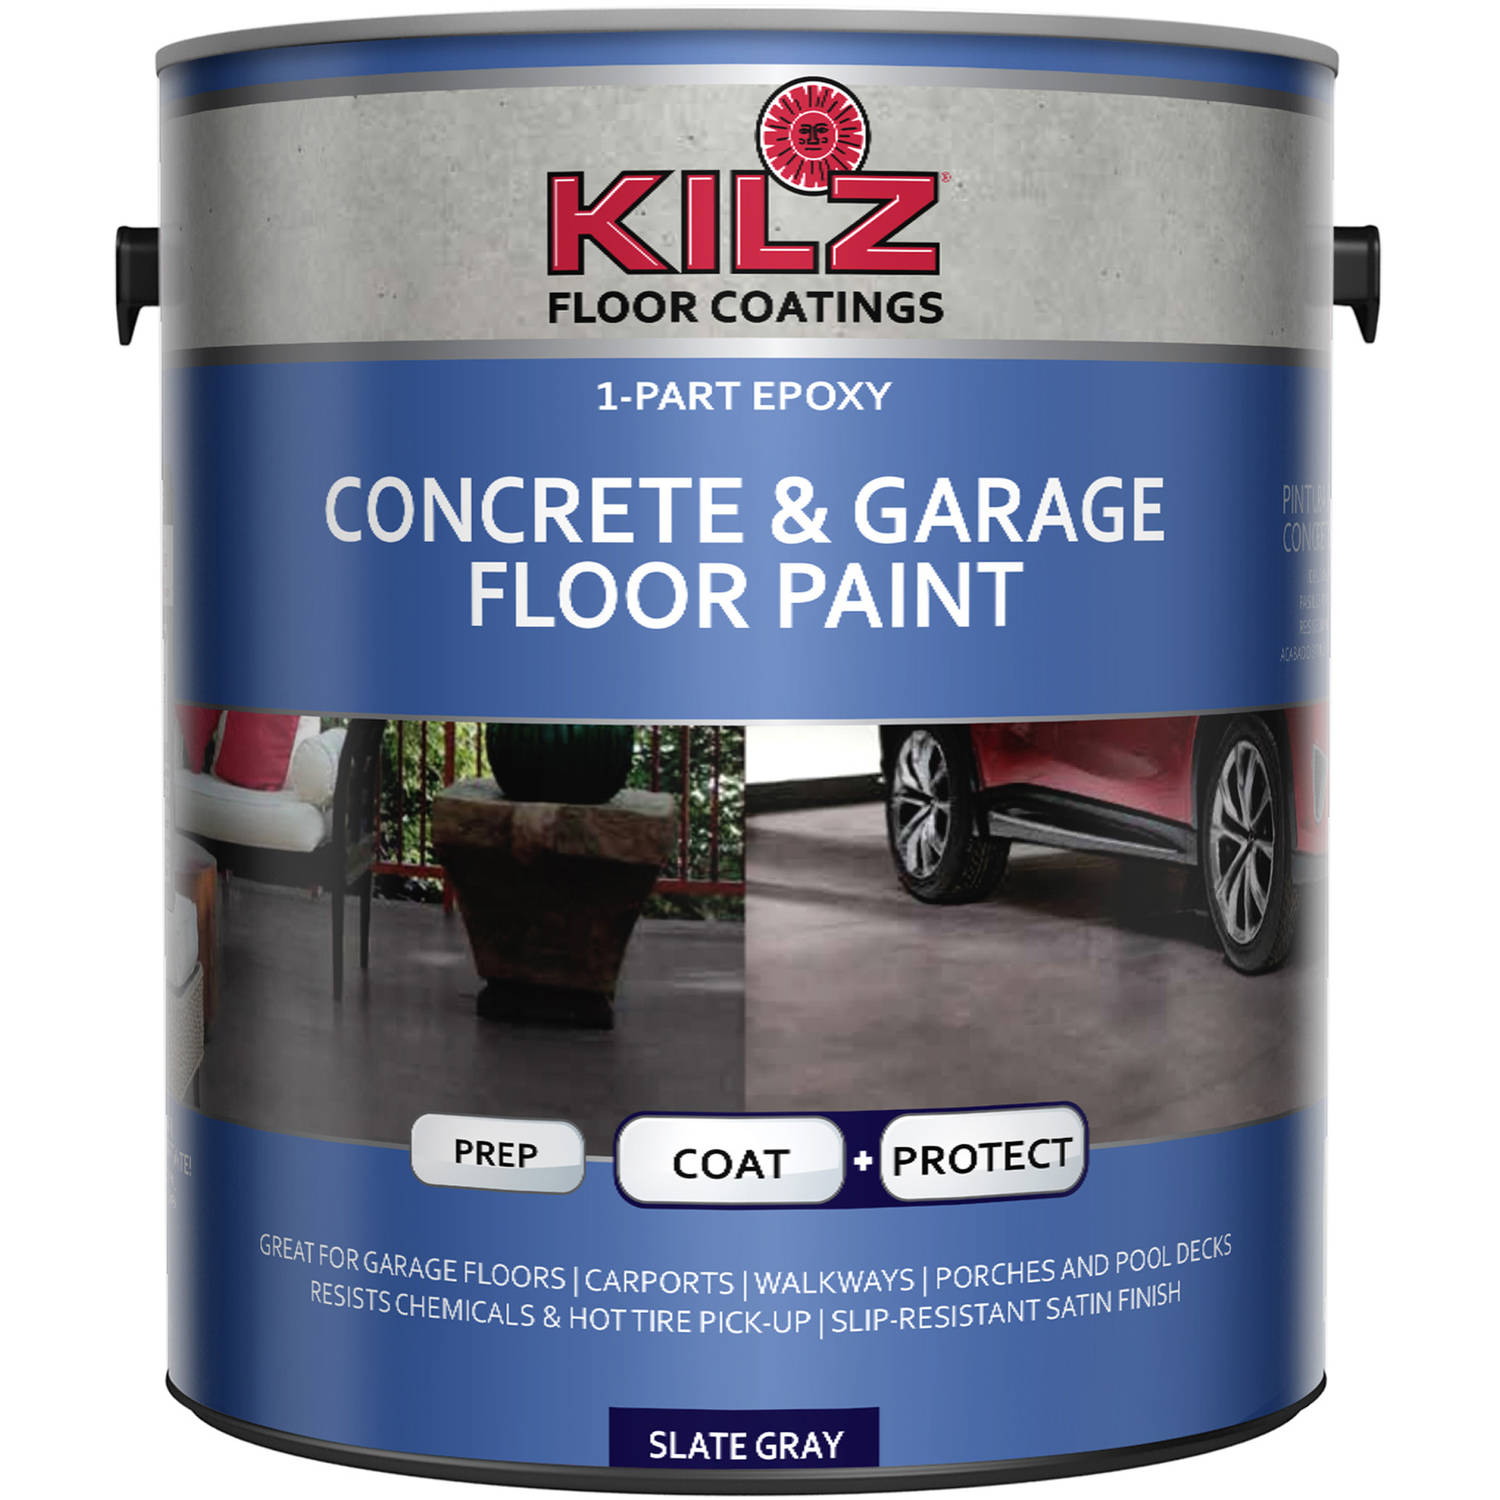 Garage Floor Paint In Basement Kilz 1 Part Epoxy Acrylic Interior Exterior Concrete And Garage Floor Paint Satin 1 Gal